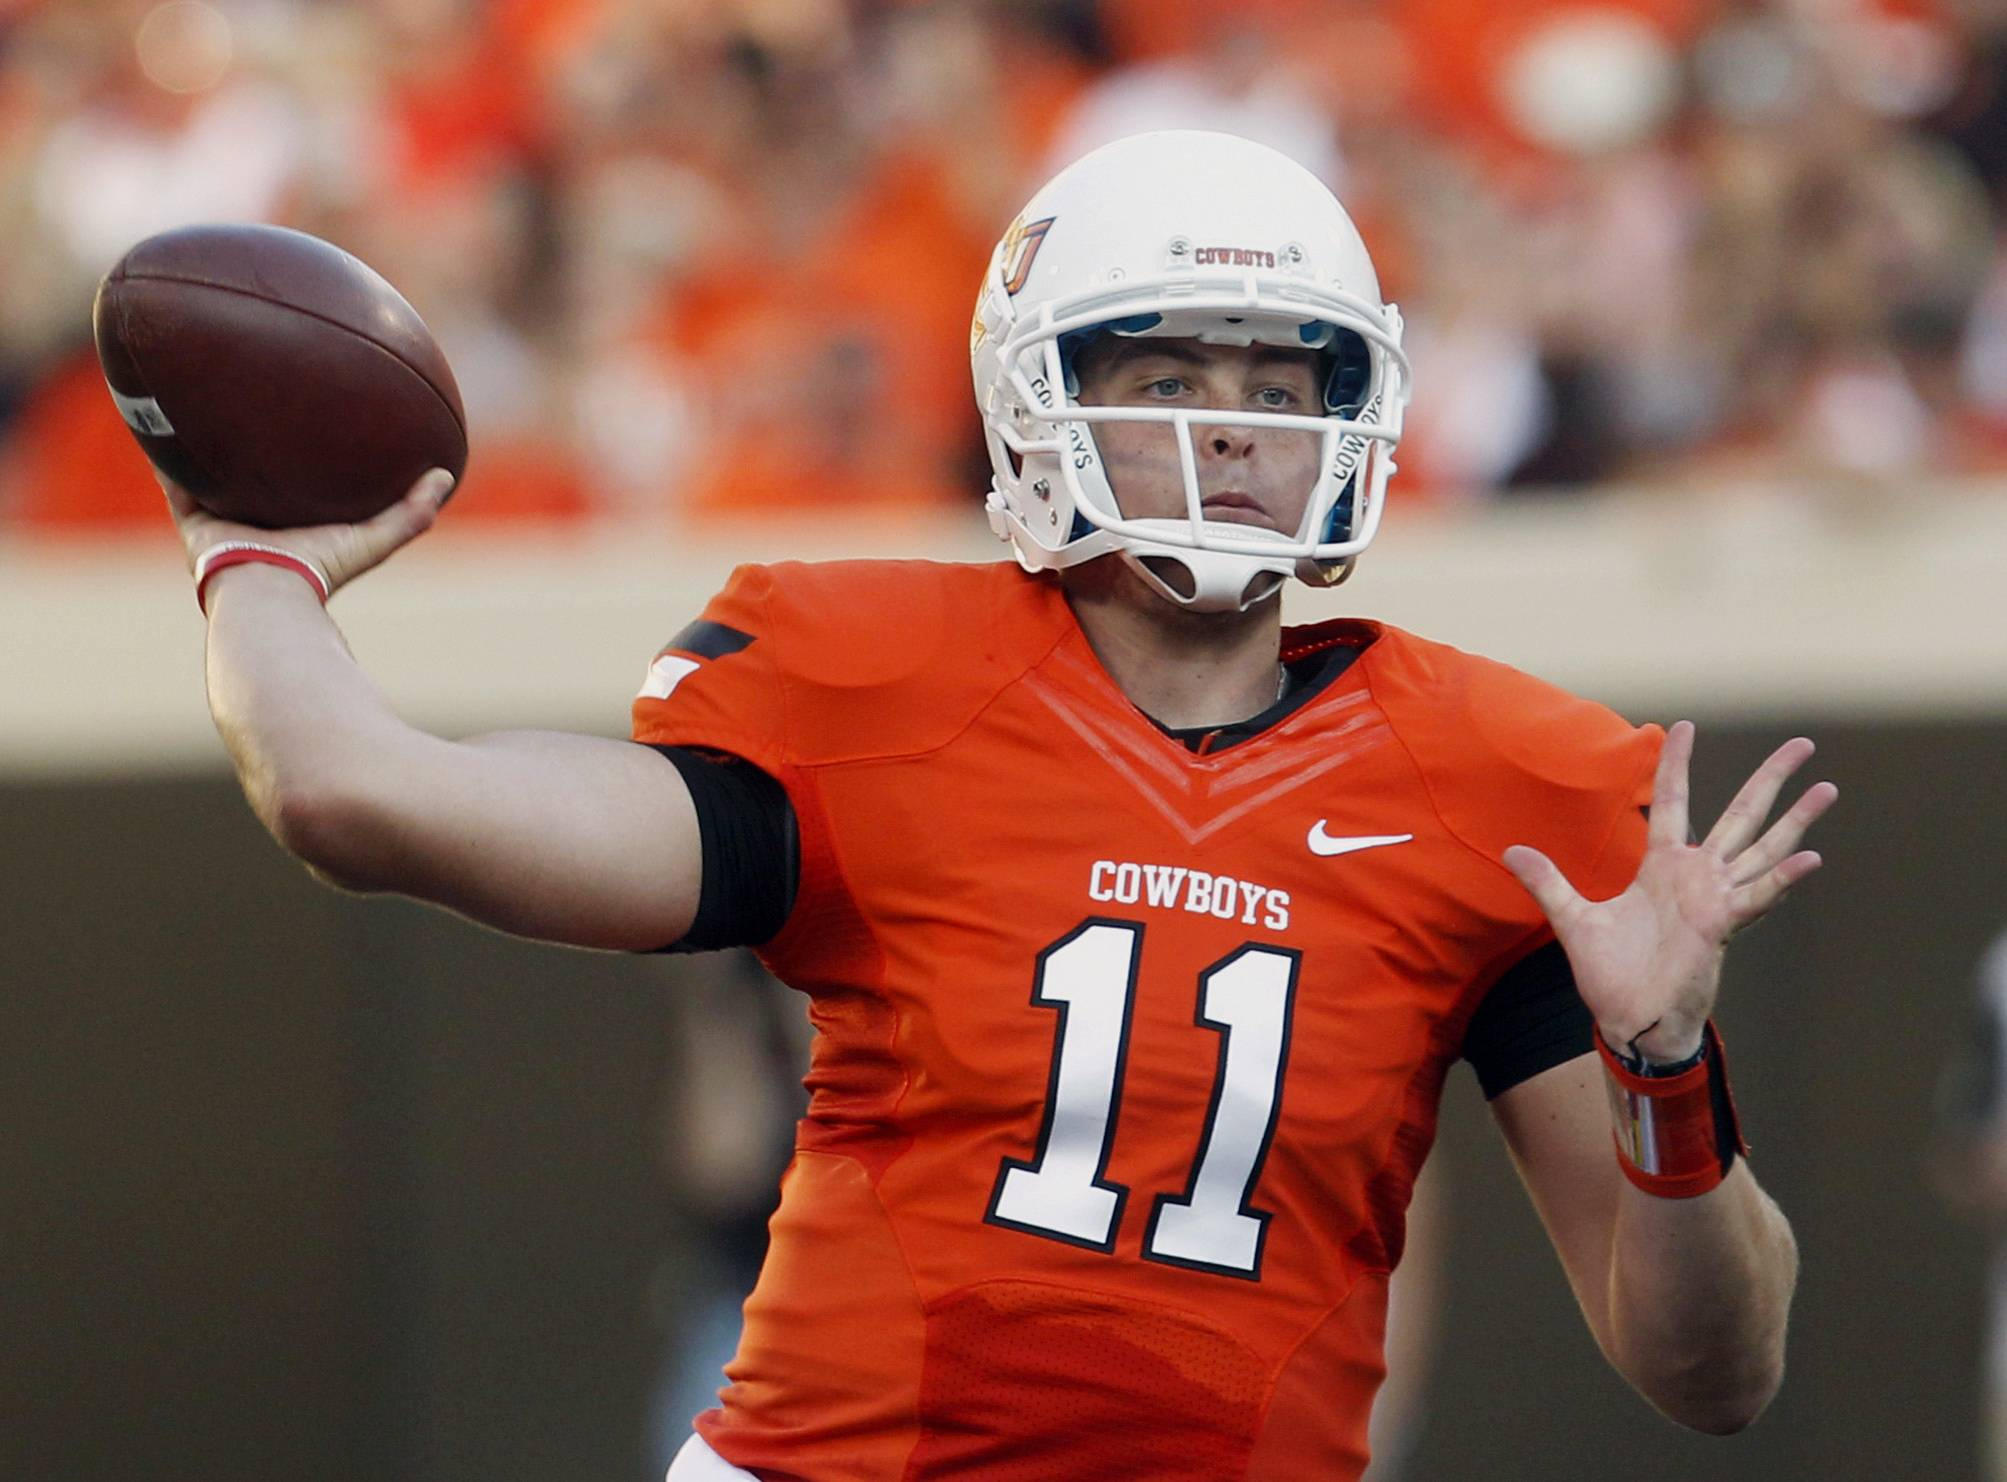 FILE - In this Sept. 1, 2012 file photo, Oklahoma State quarterback Wes Lunt throws against Savannah State during an NCAA college football game in Stillwater, Okla. Illinois head coach Tim Beckman says he's in no hurry to name a starting quarterback and that the competition between the three potential candidates to succeed Nathan Scheelhaase is wide open. Lunt brings a skill set and a pedigree that the Illini haven't seen in a while. The tall, strong-armed quarterback sat out last season after transferring from Oklahoma State.